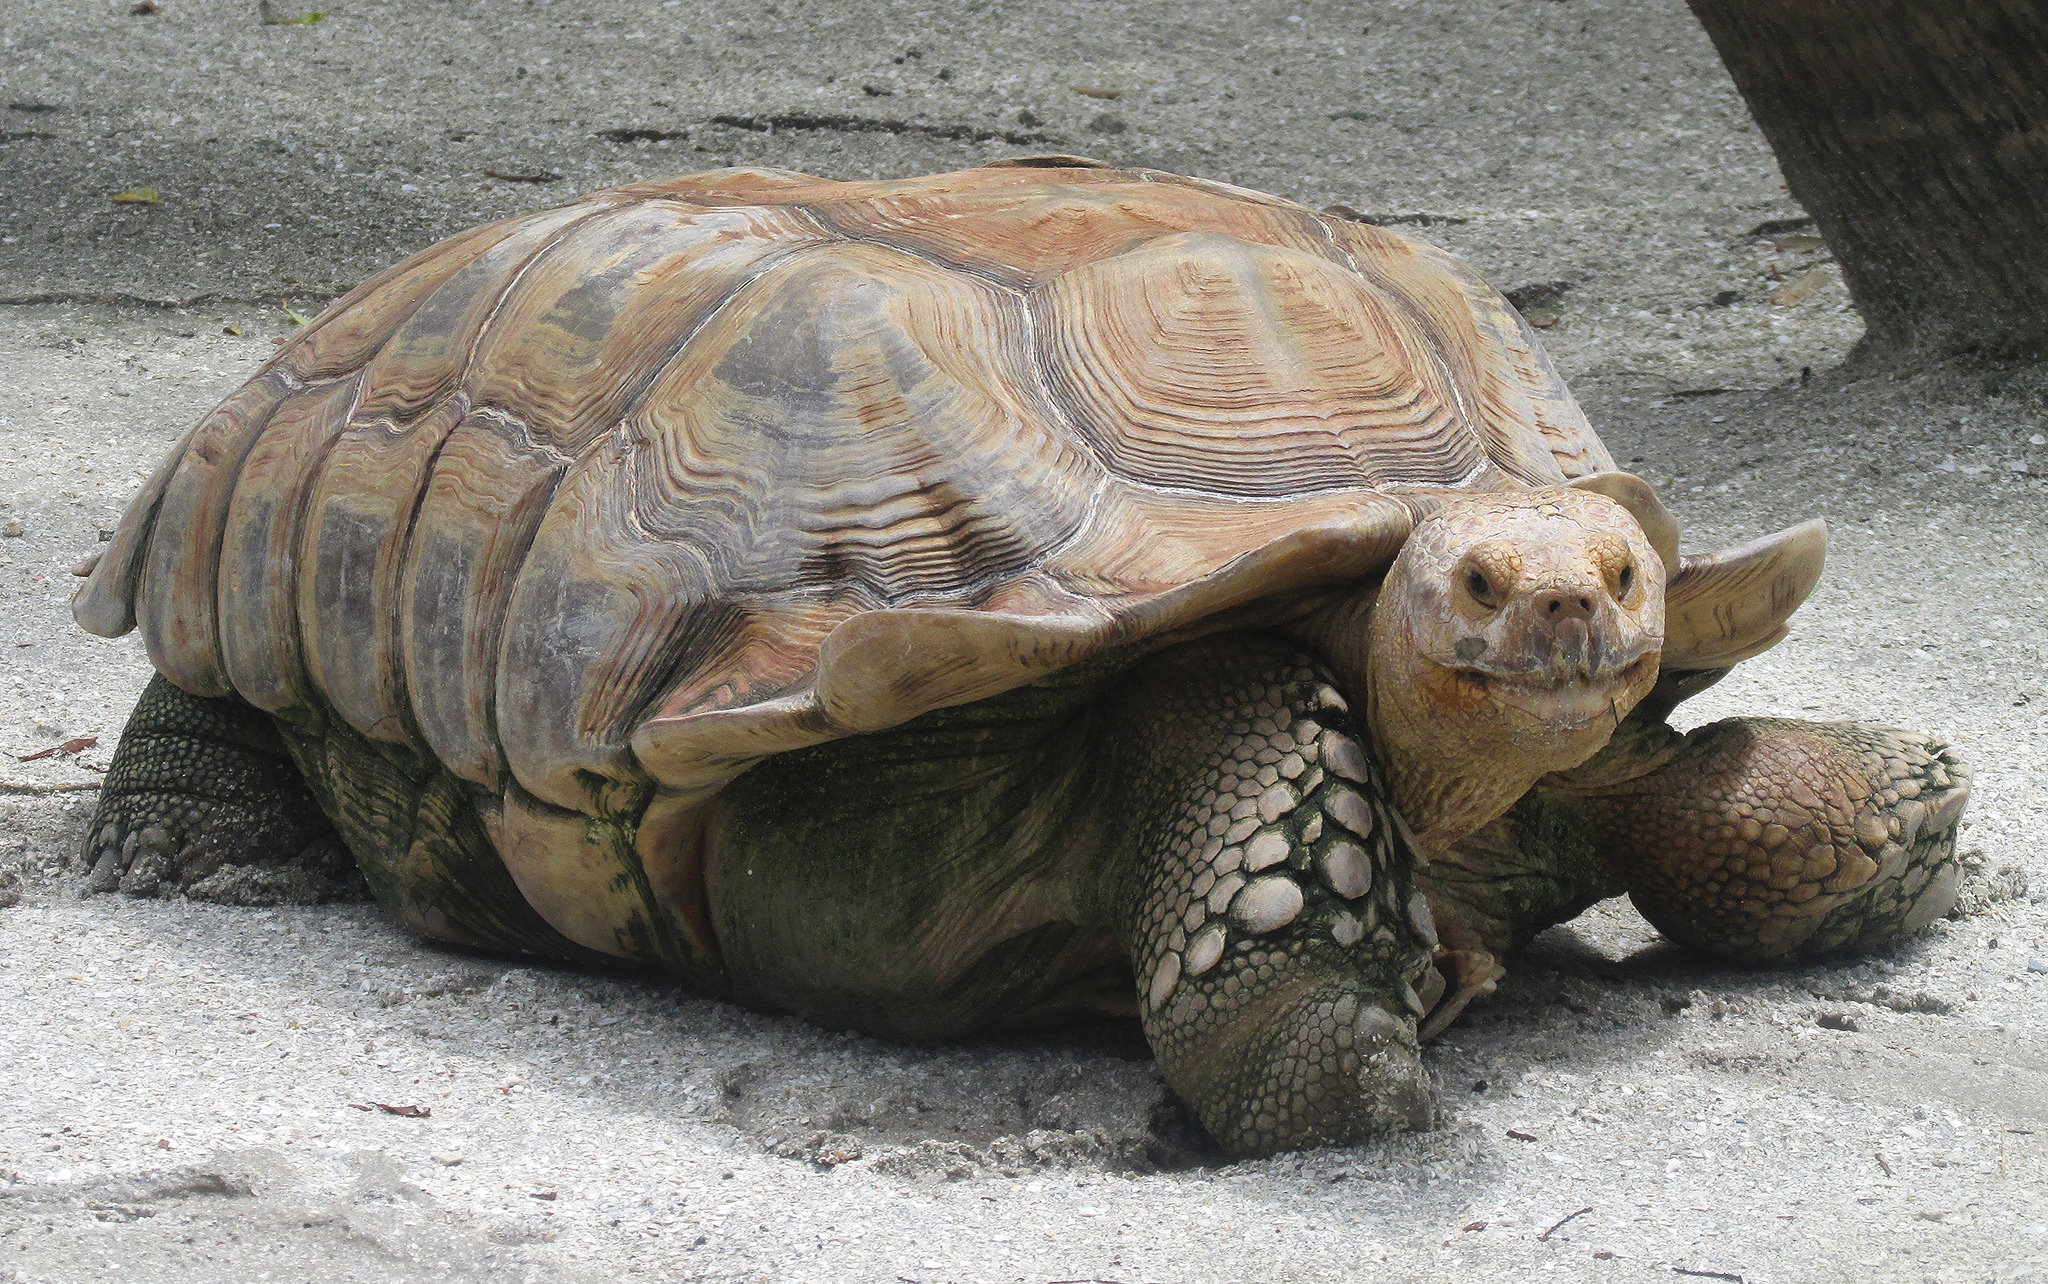 The famous Galapagos turtle